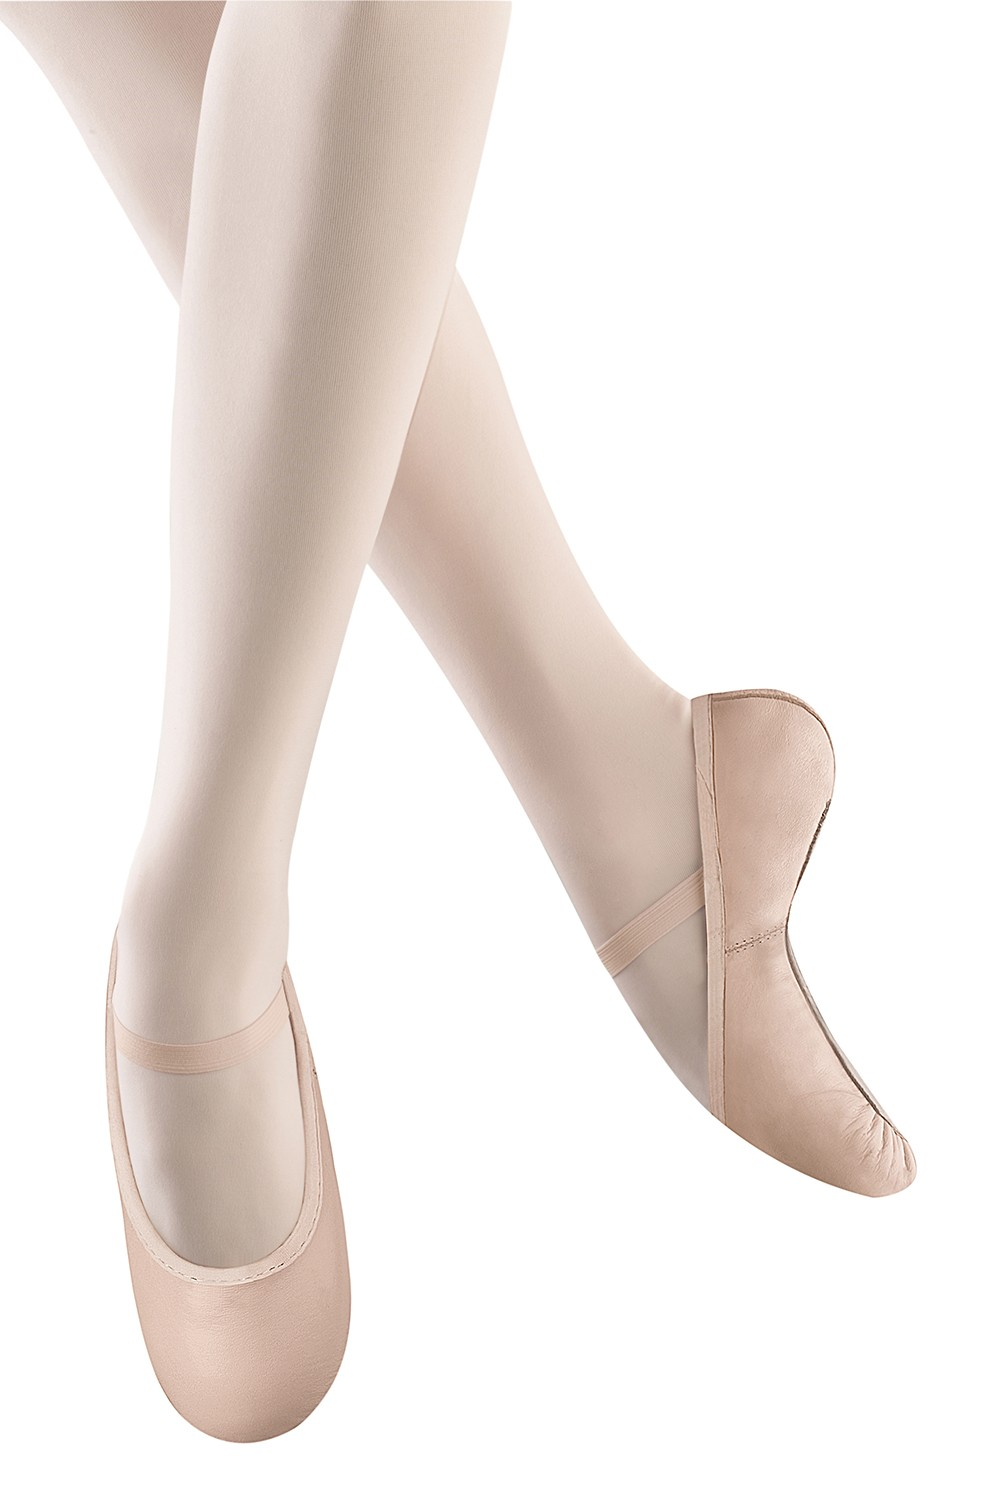 Belle - Ragazze Girl's Ballet Shoes